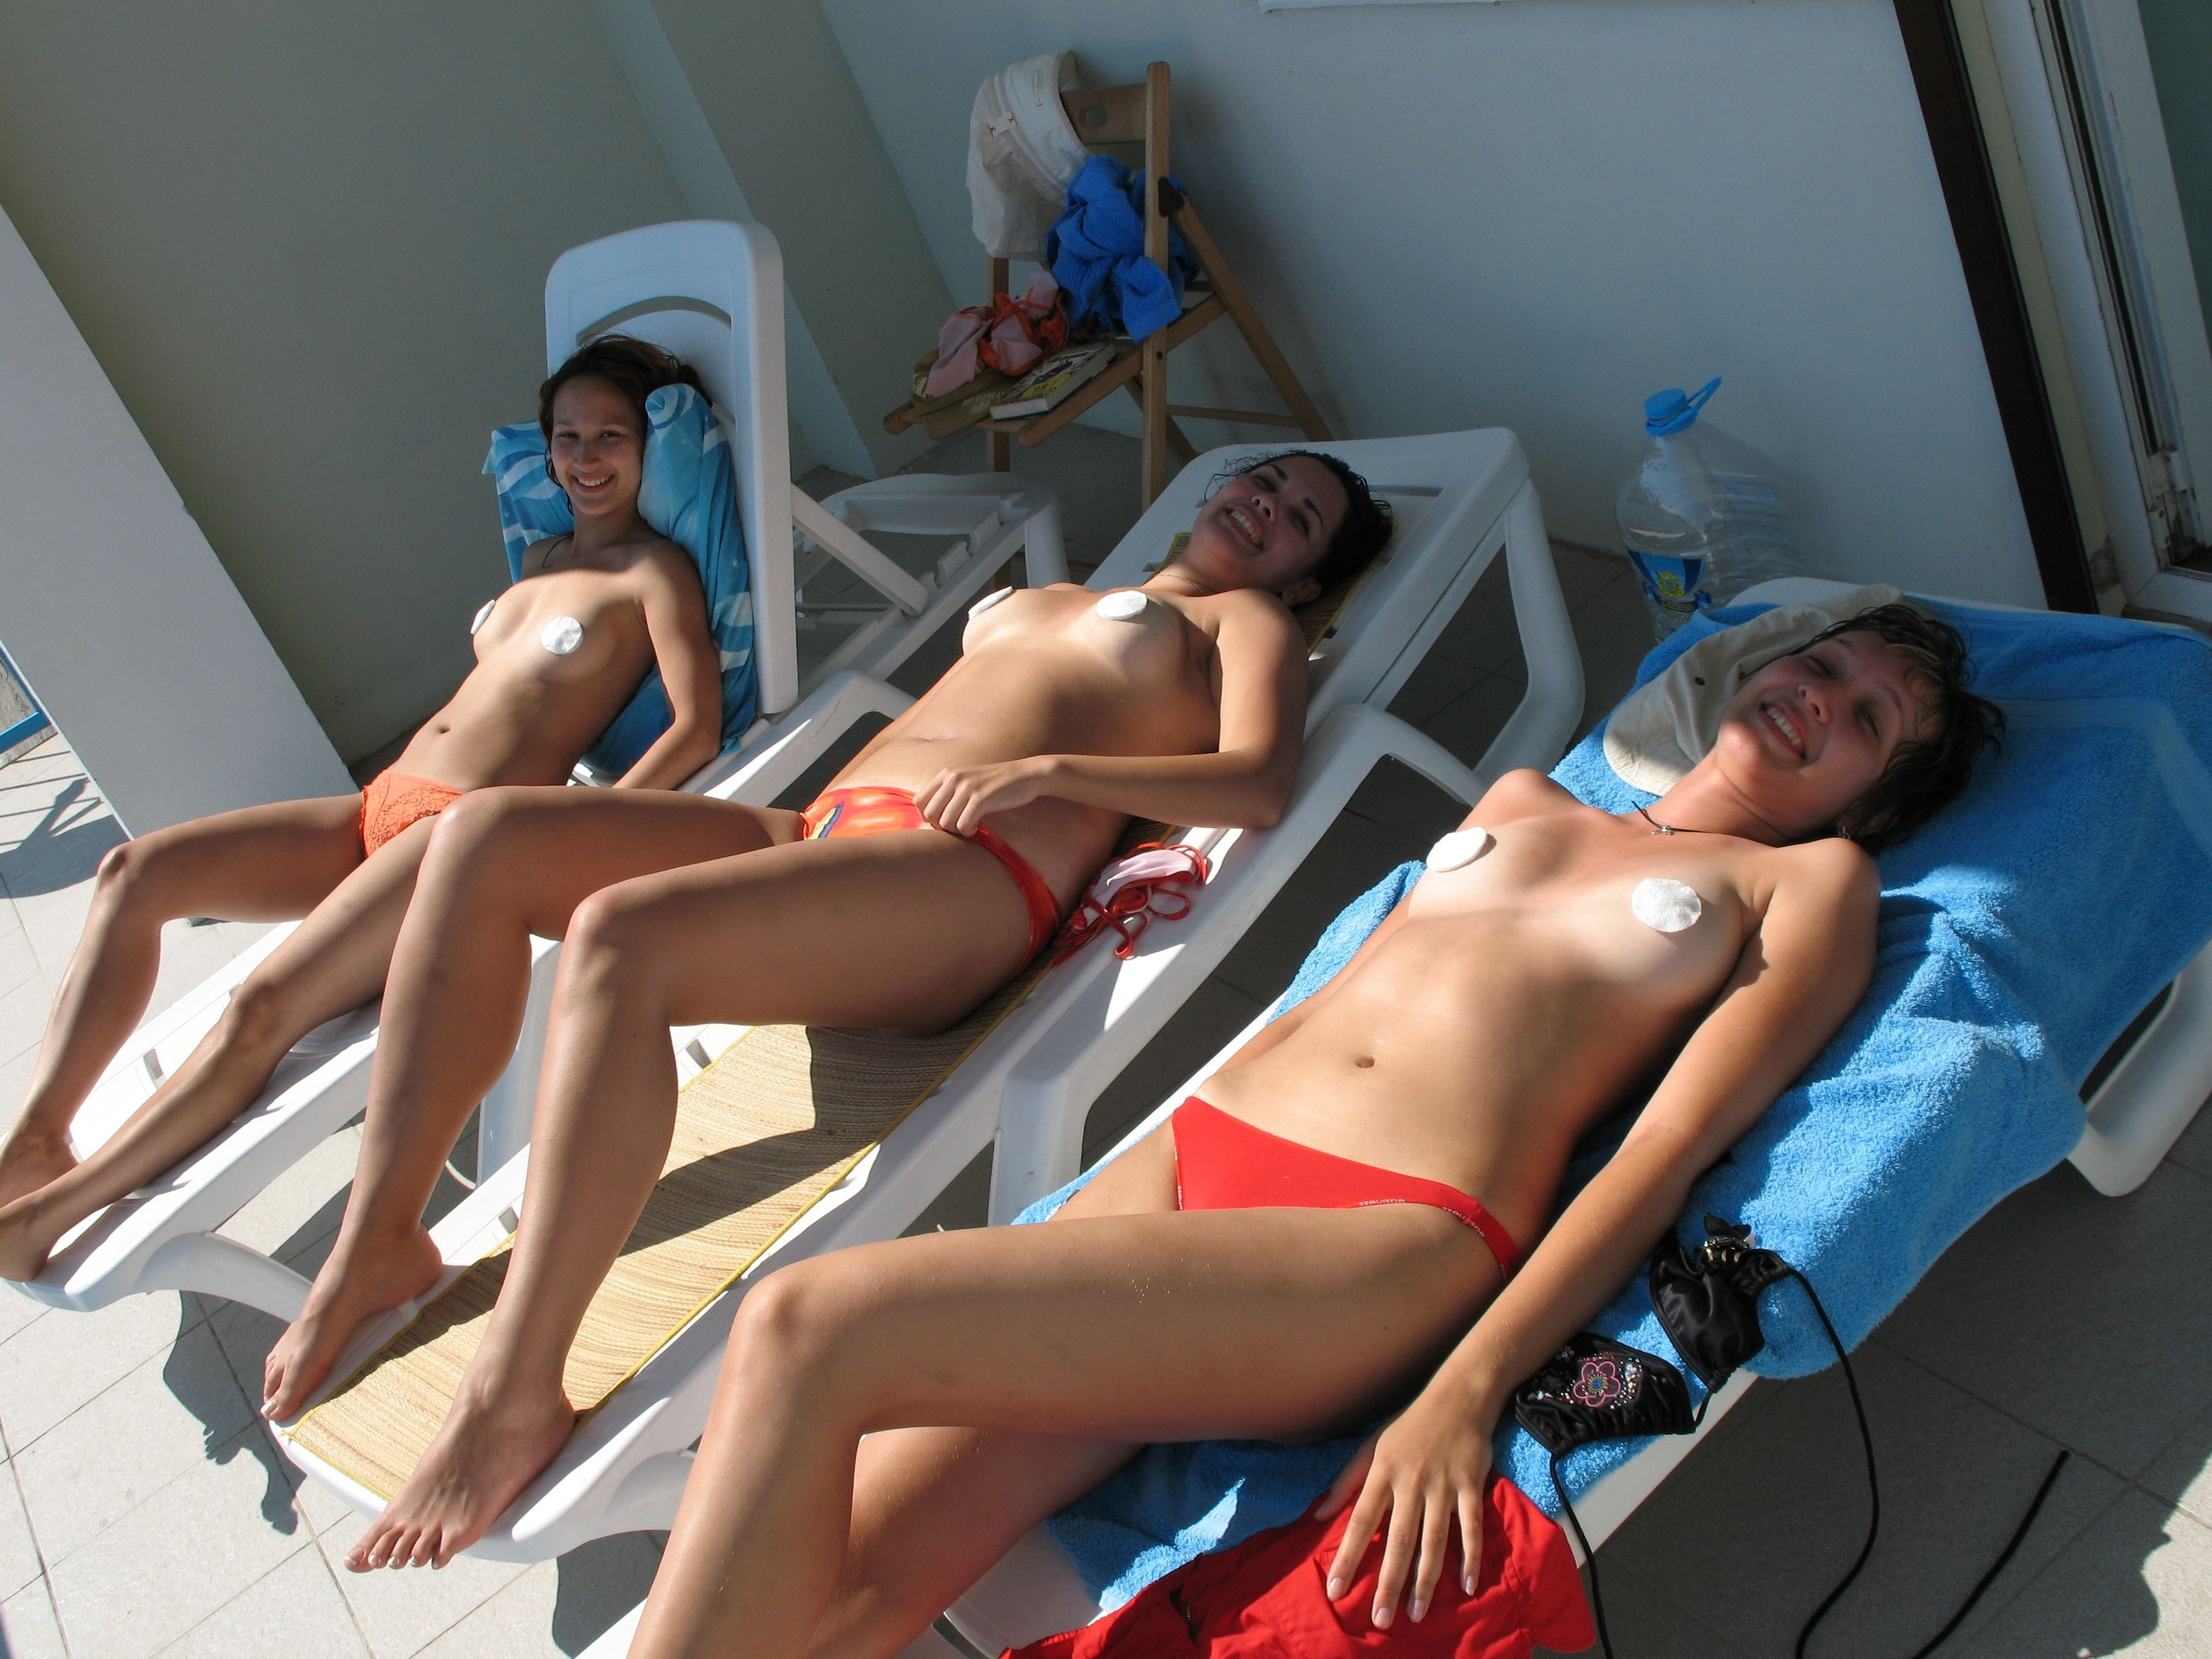 Afterschool tanning 5 the one that would never date you